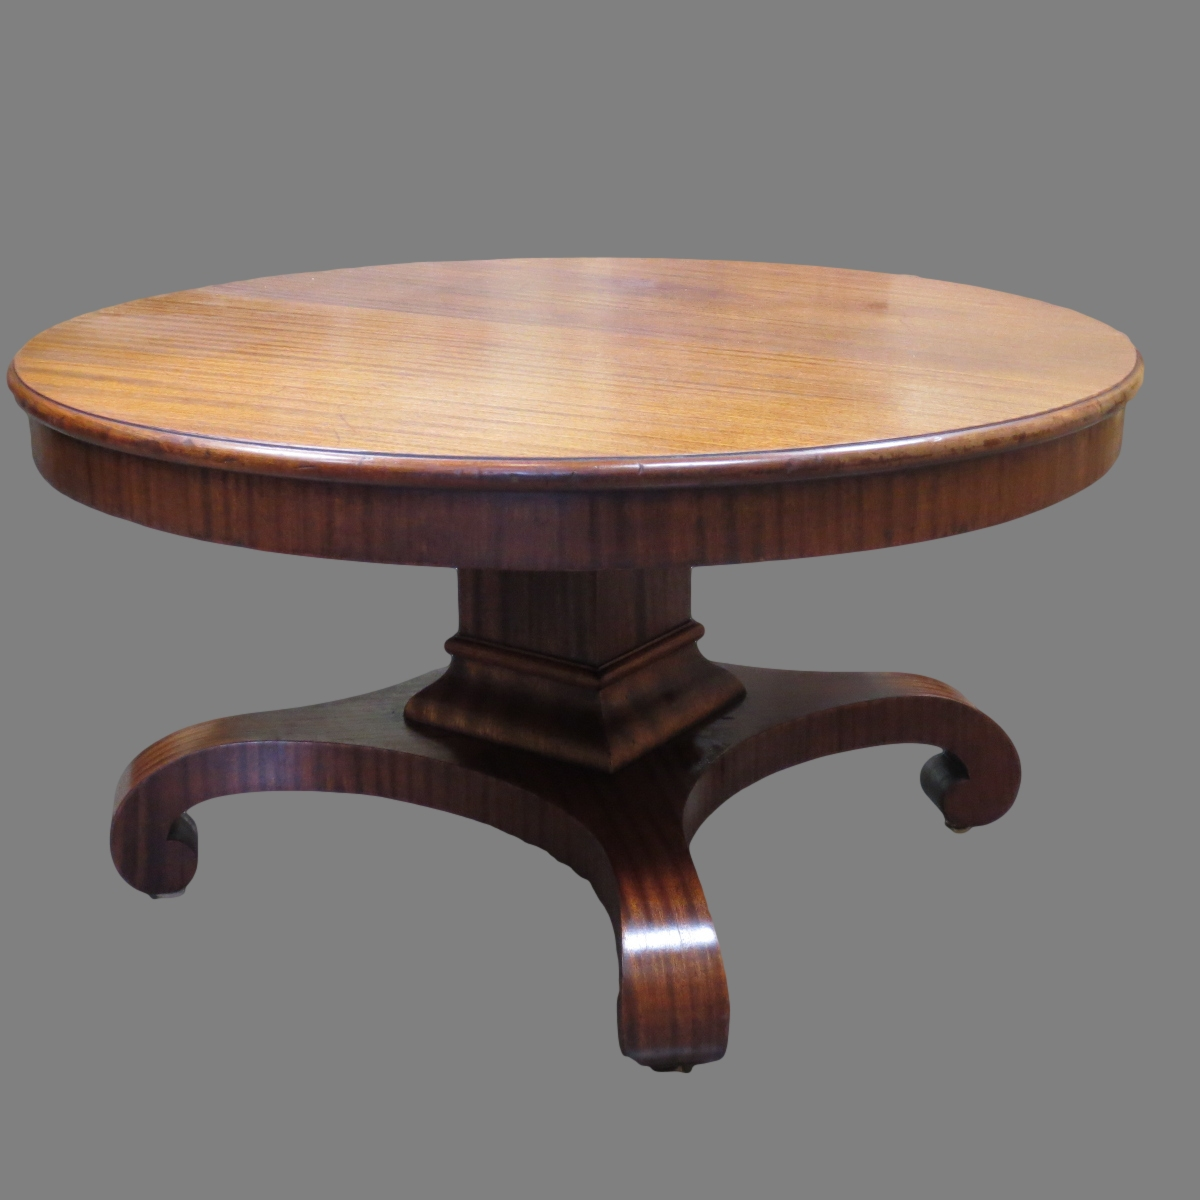 Featured Photo of Round Antique Coffee Table For Living Room